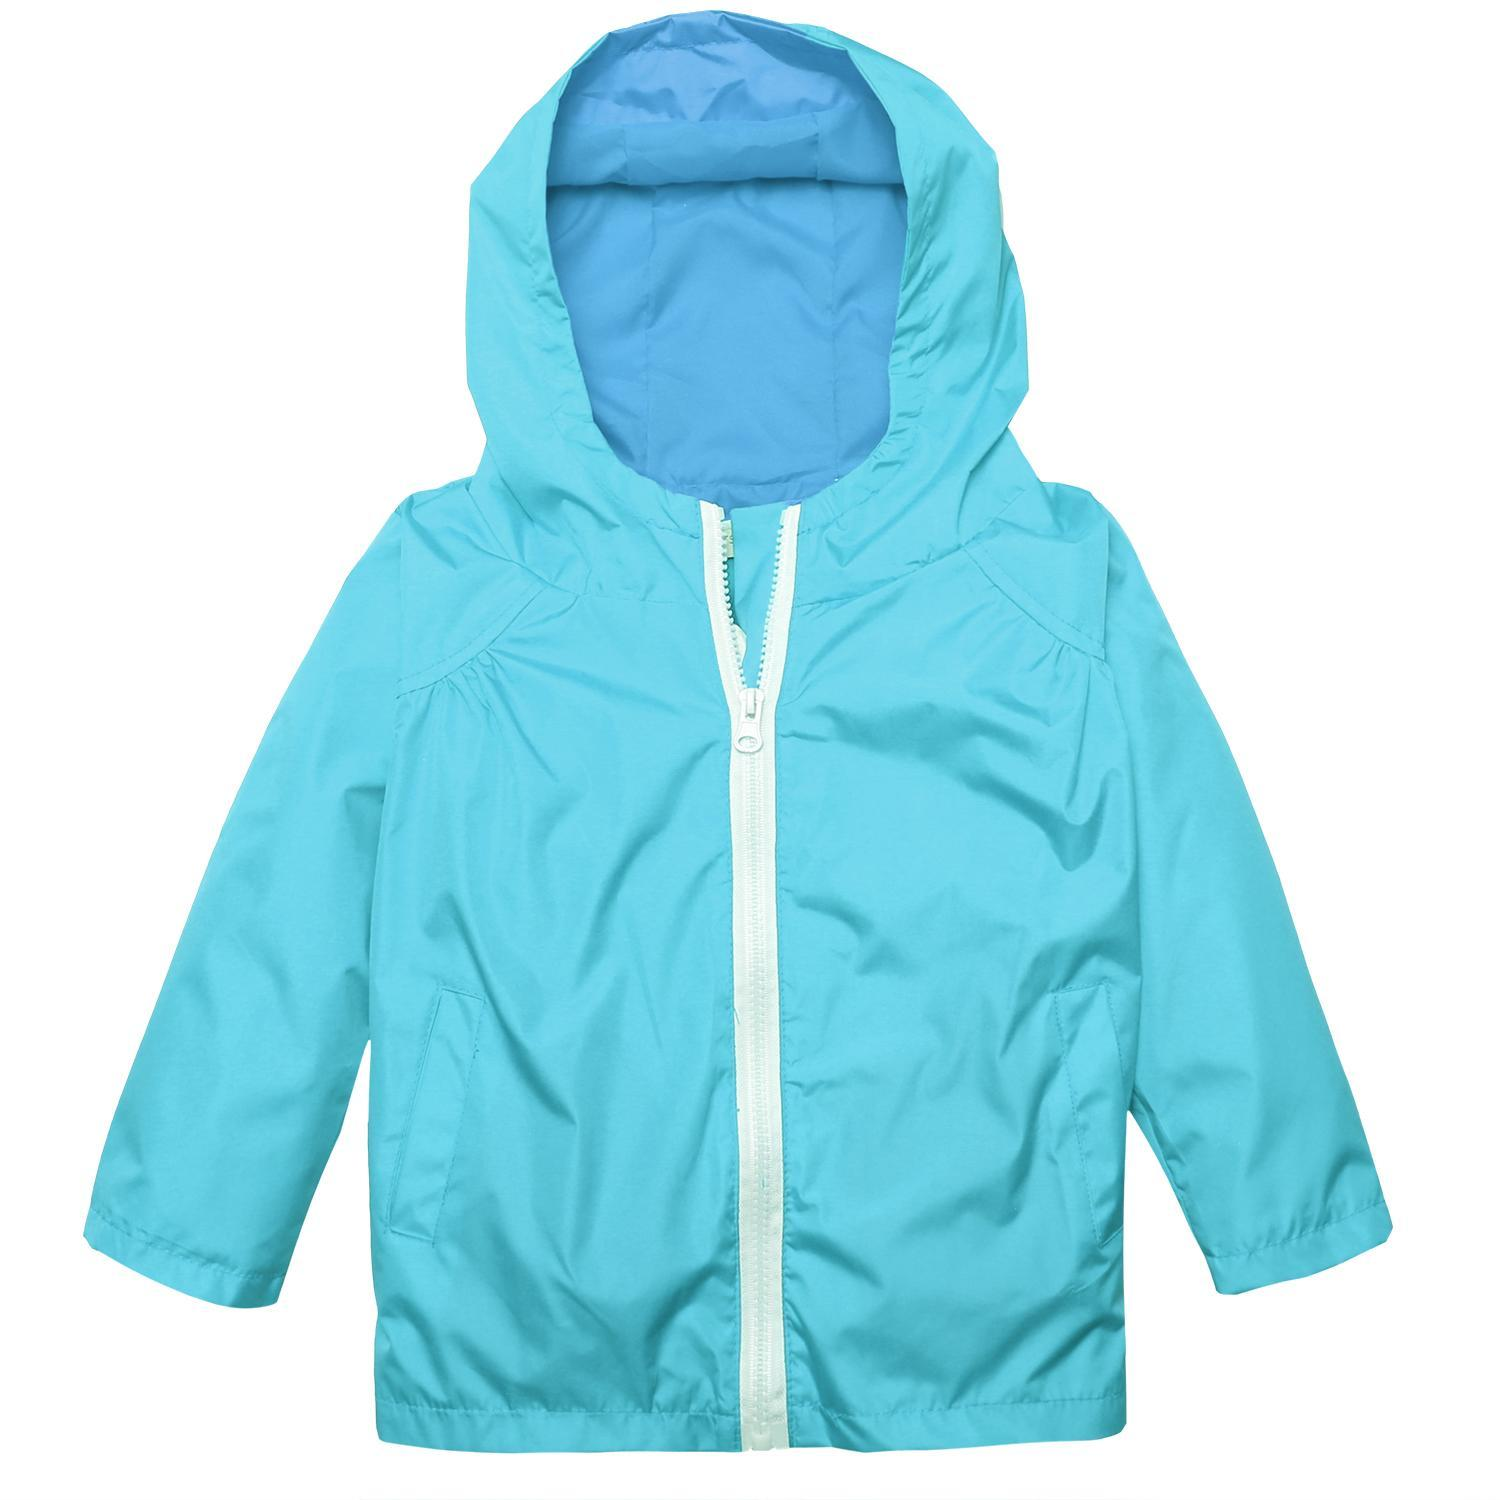 d9995f8b7 Arshiner Light Jacket Outwear Raincoat Outerwear